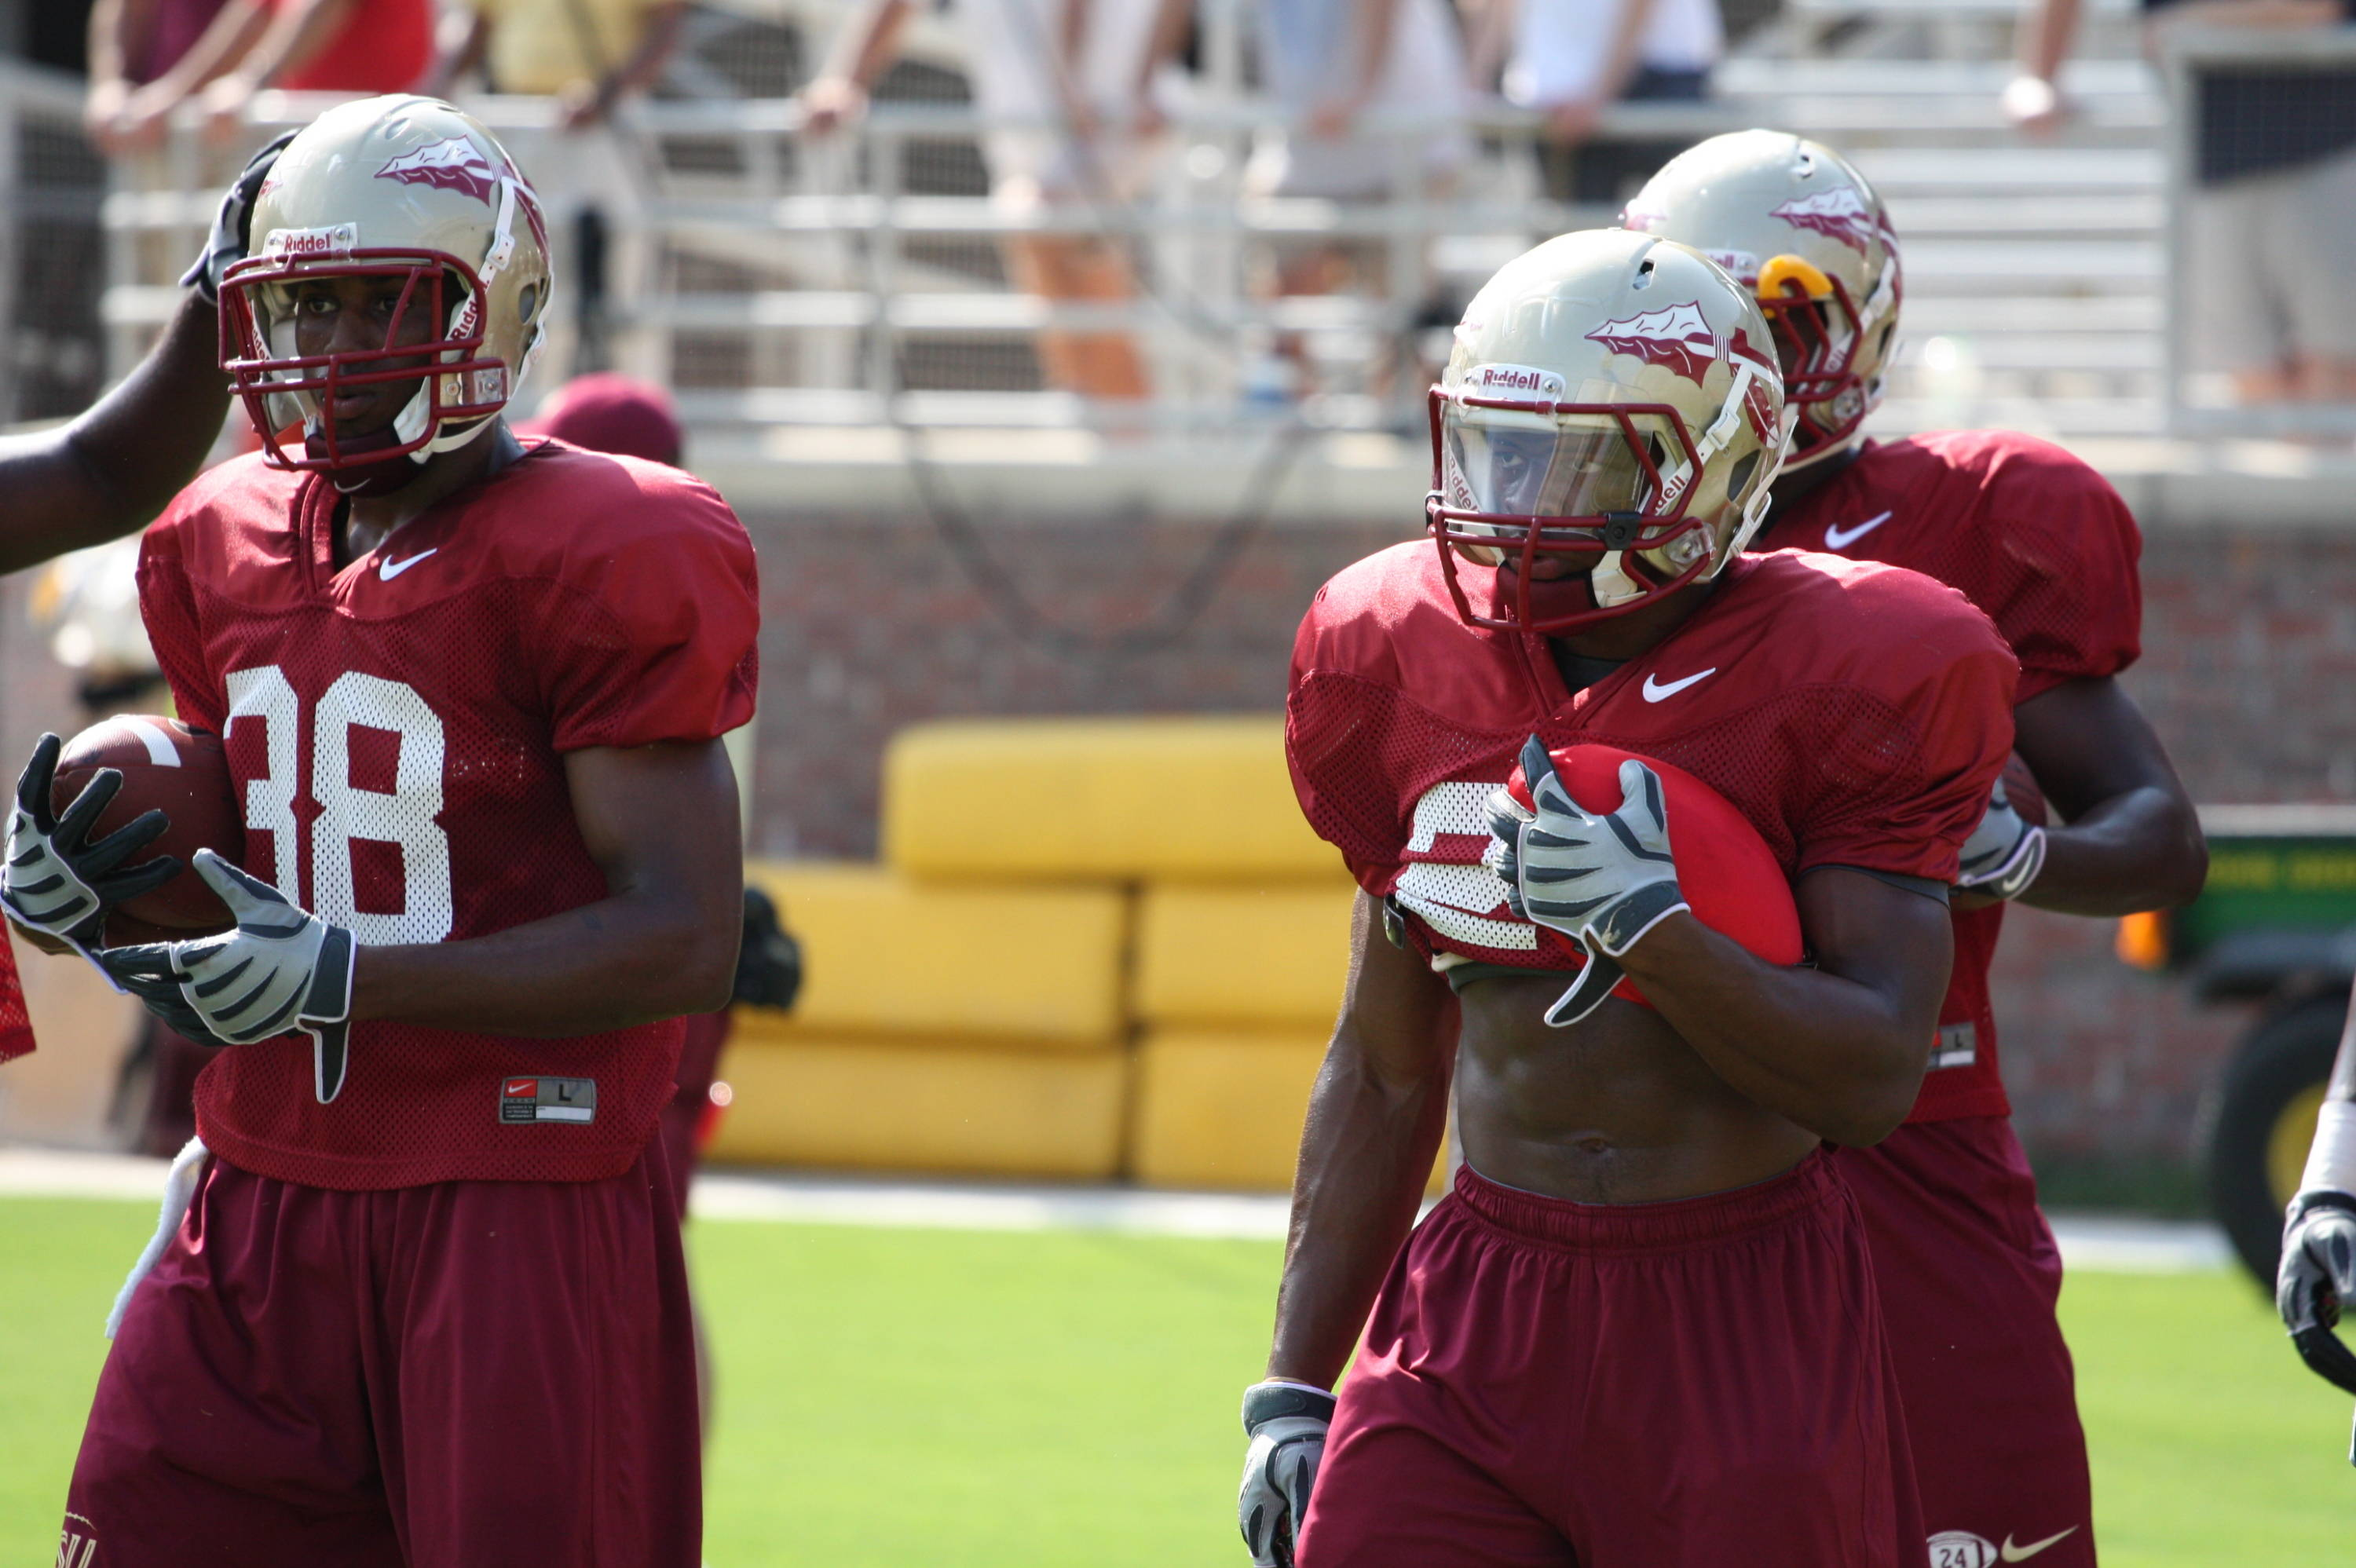 Jermaine Thomas and Chris Thompson